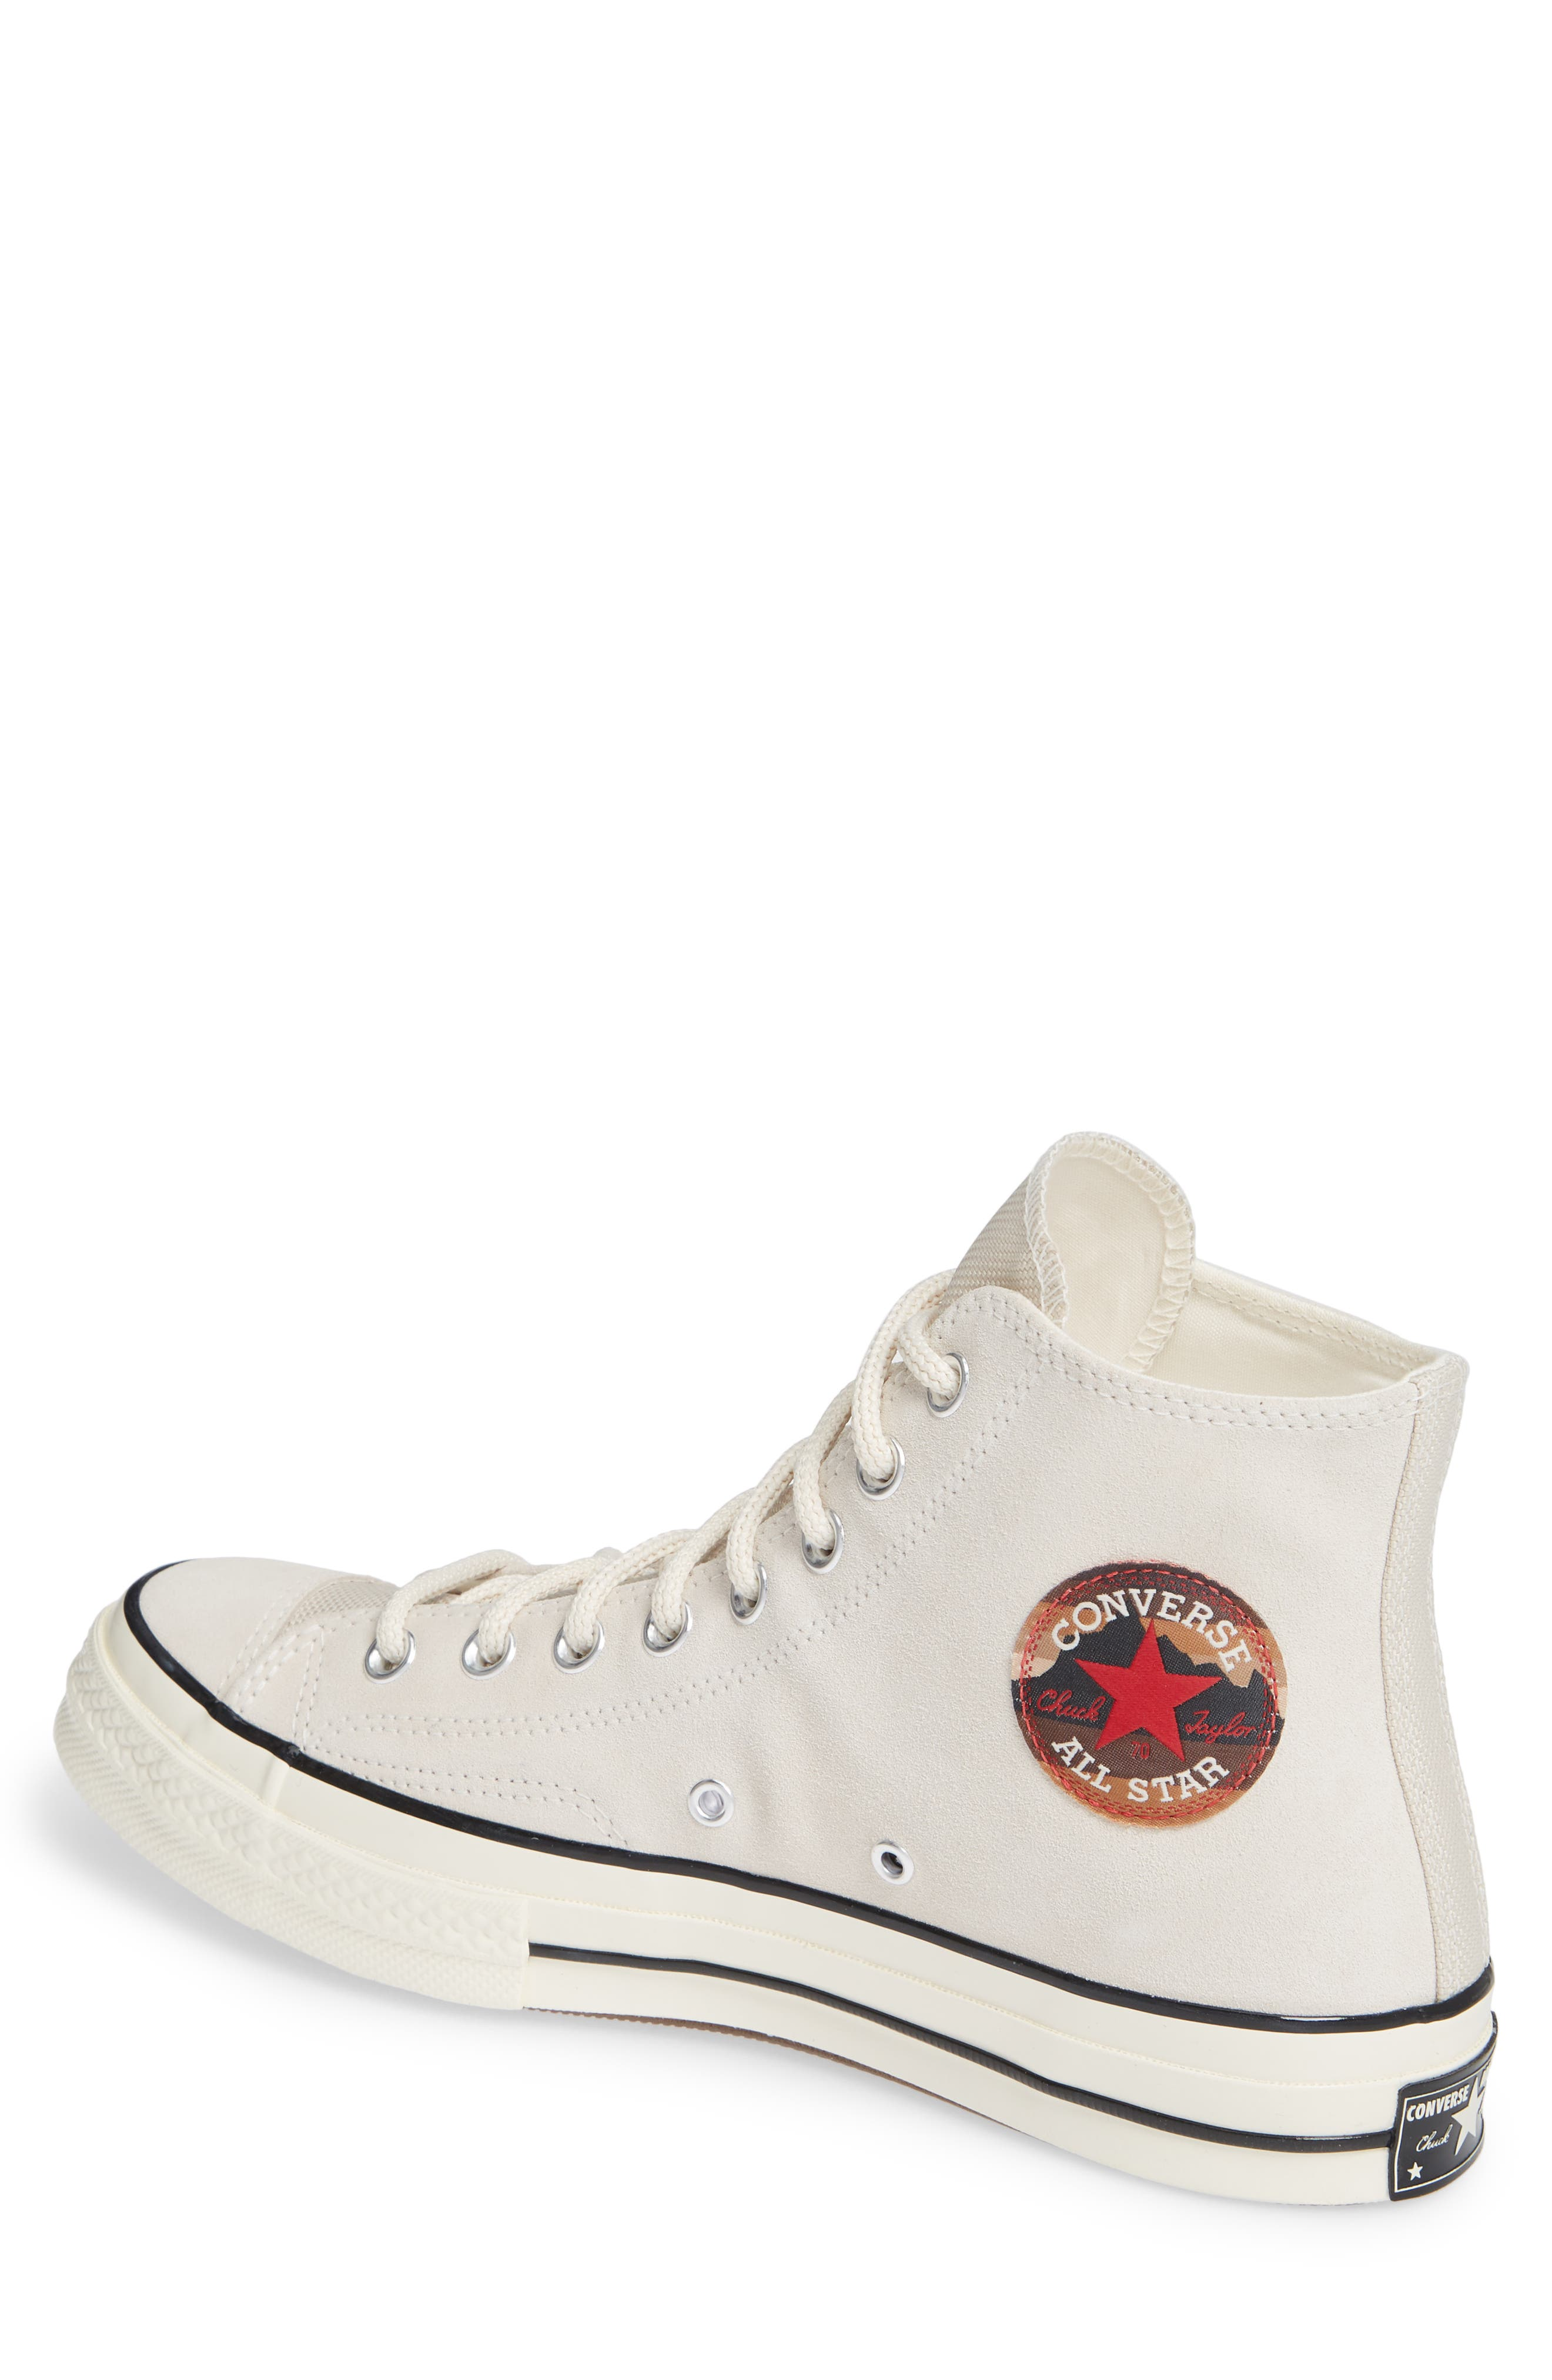 Chuck Taylor<sup>®</sup> All Star<sup>®</sup> 70 Base Camp High Top Sneaker,                             Alternate thumbnail 2, color,                             NATURAL IVORY/BLACK